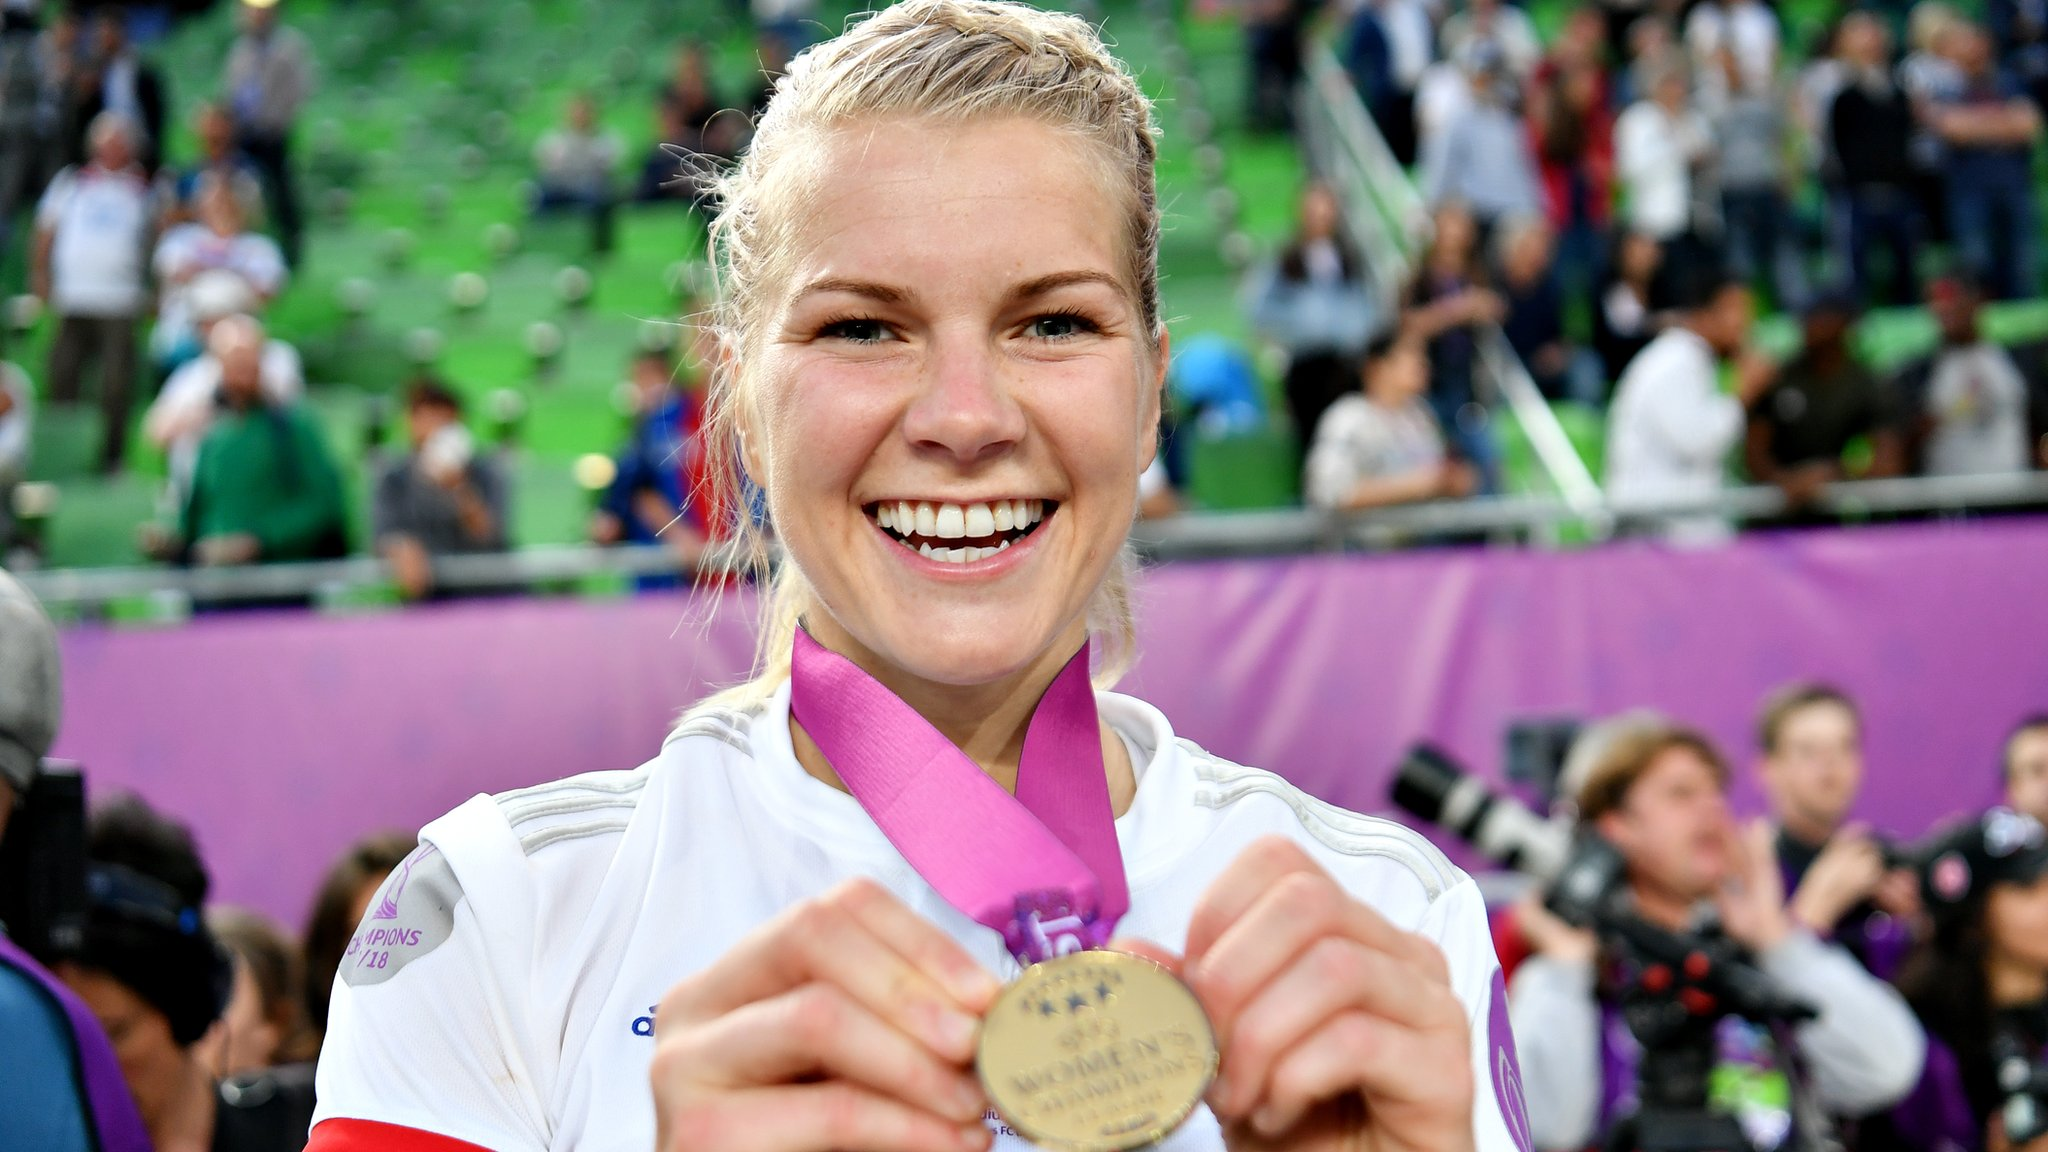 'One day the men in suits will understand' - BBC award winner Hegerberg on equality